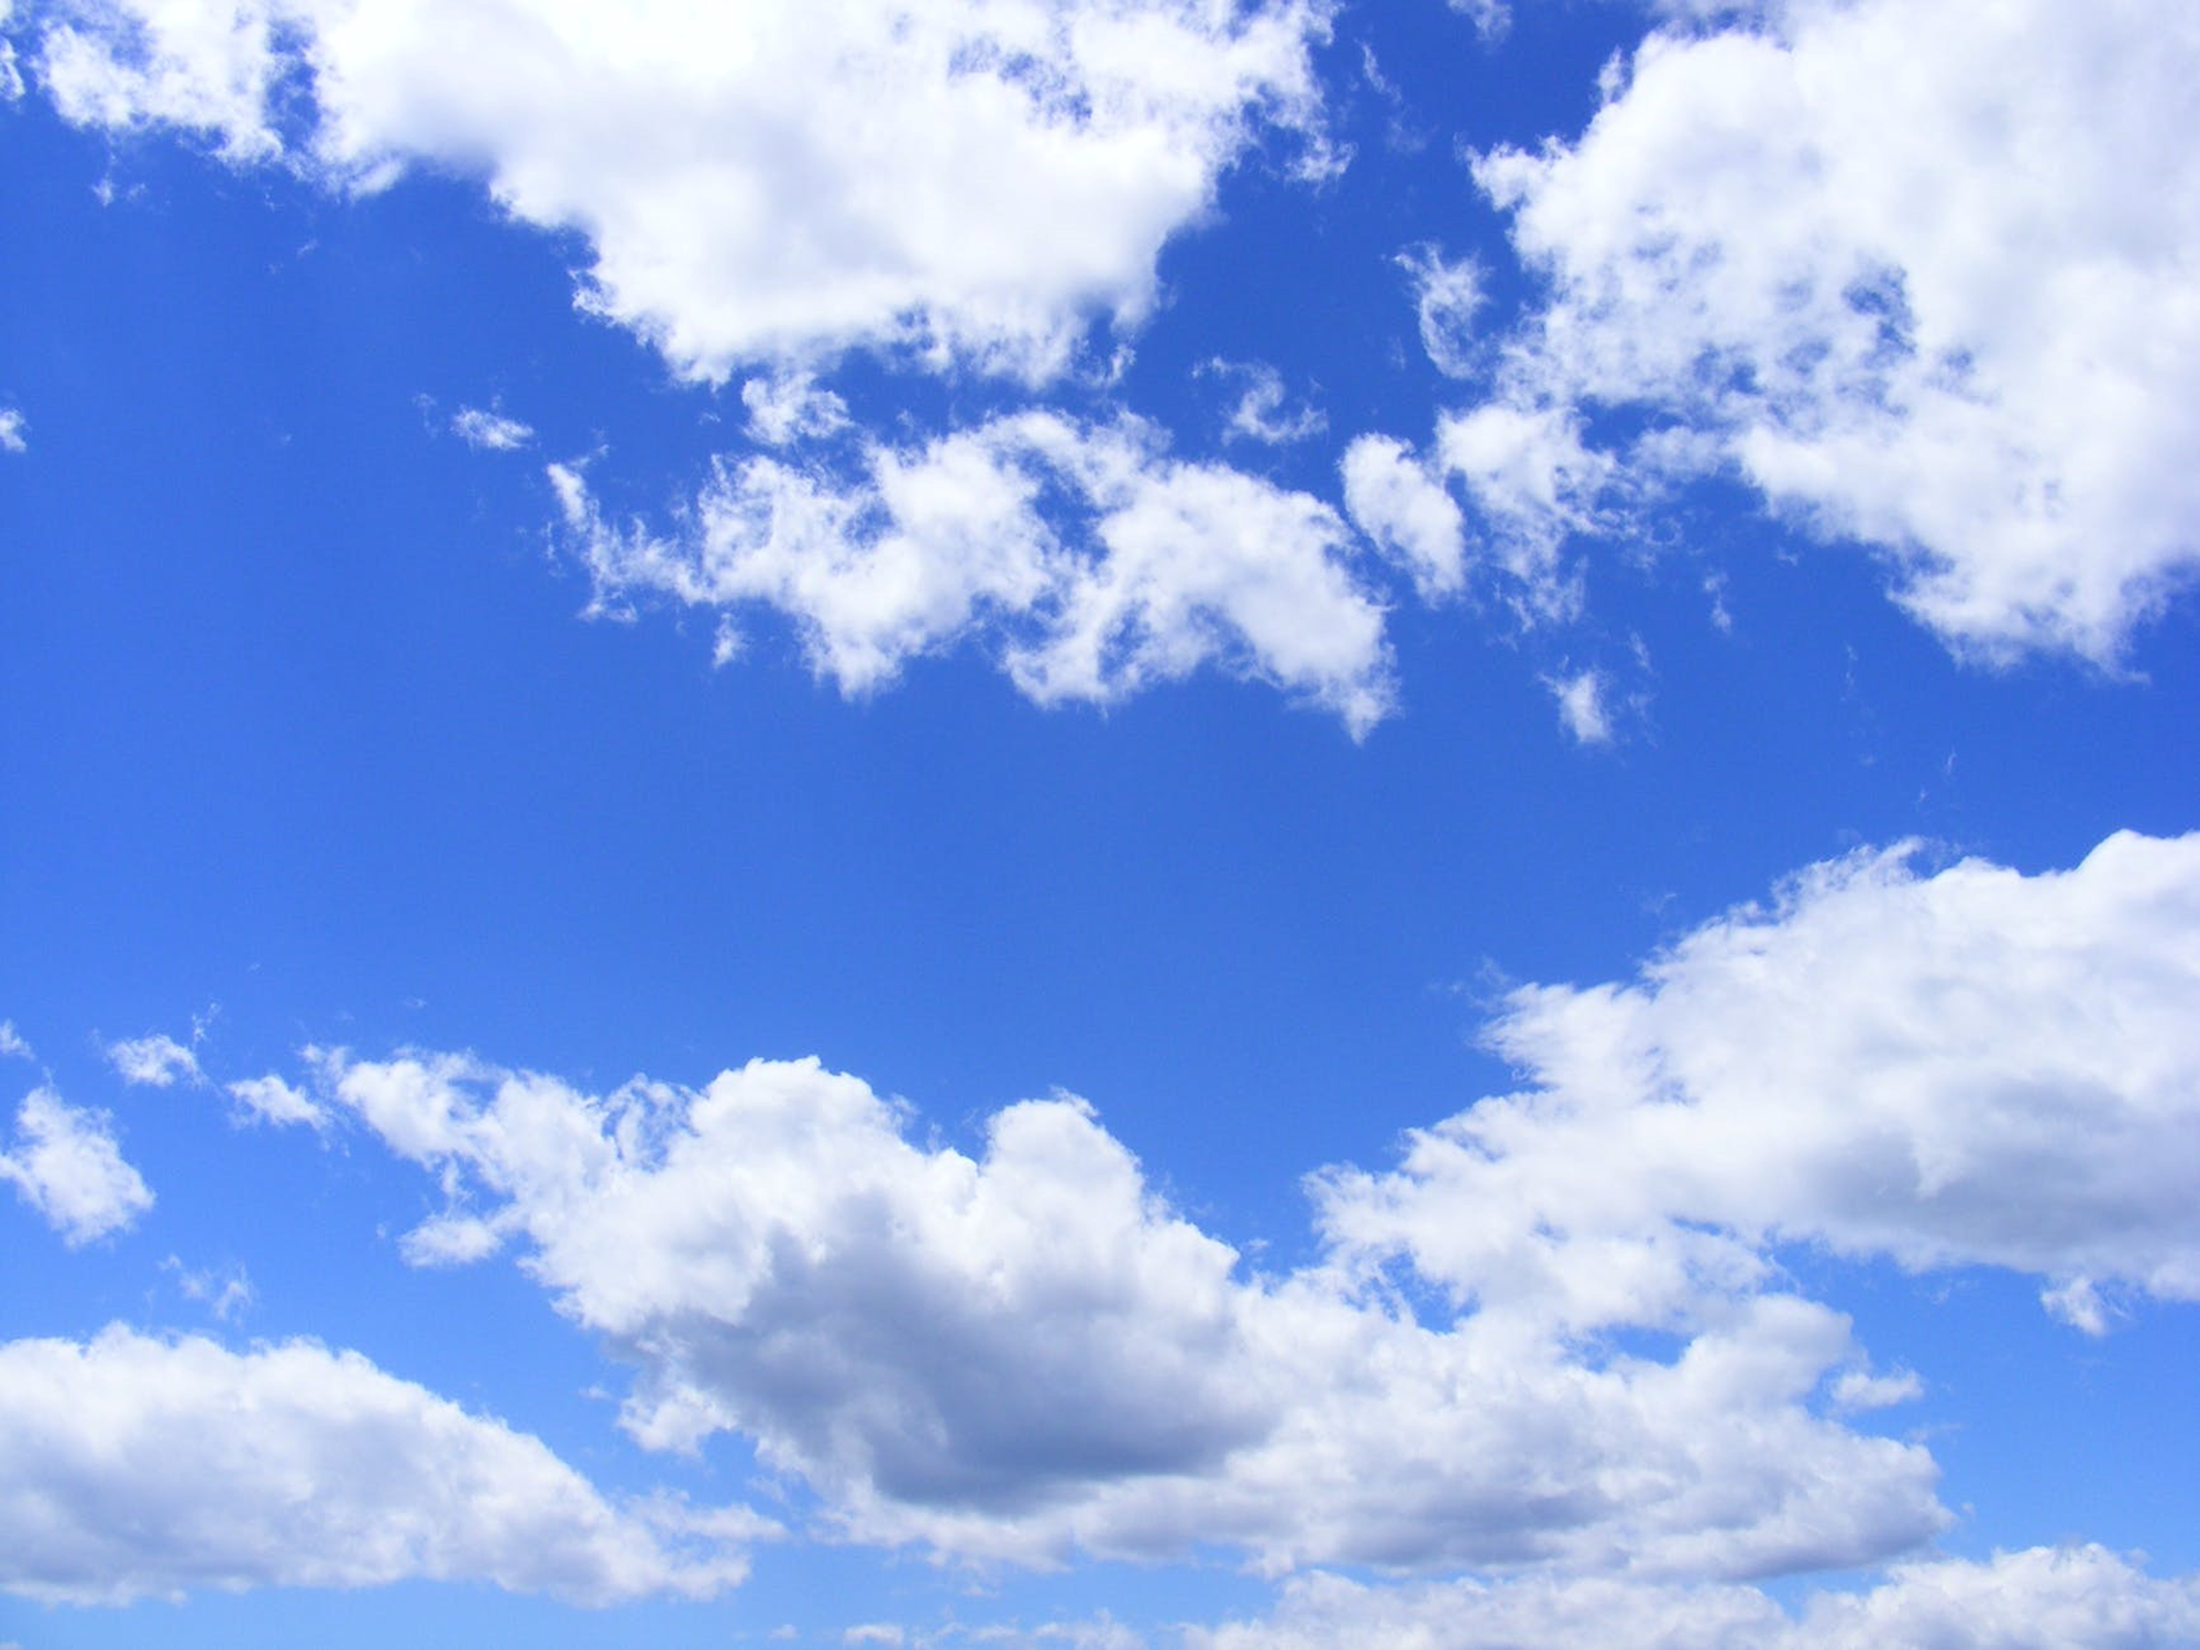 blue-clouds-day-fluffy-53594